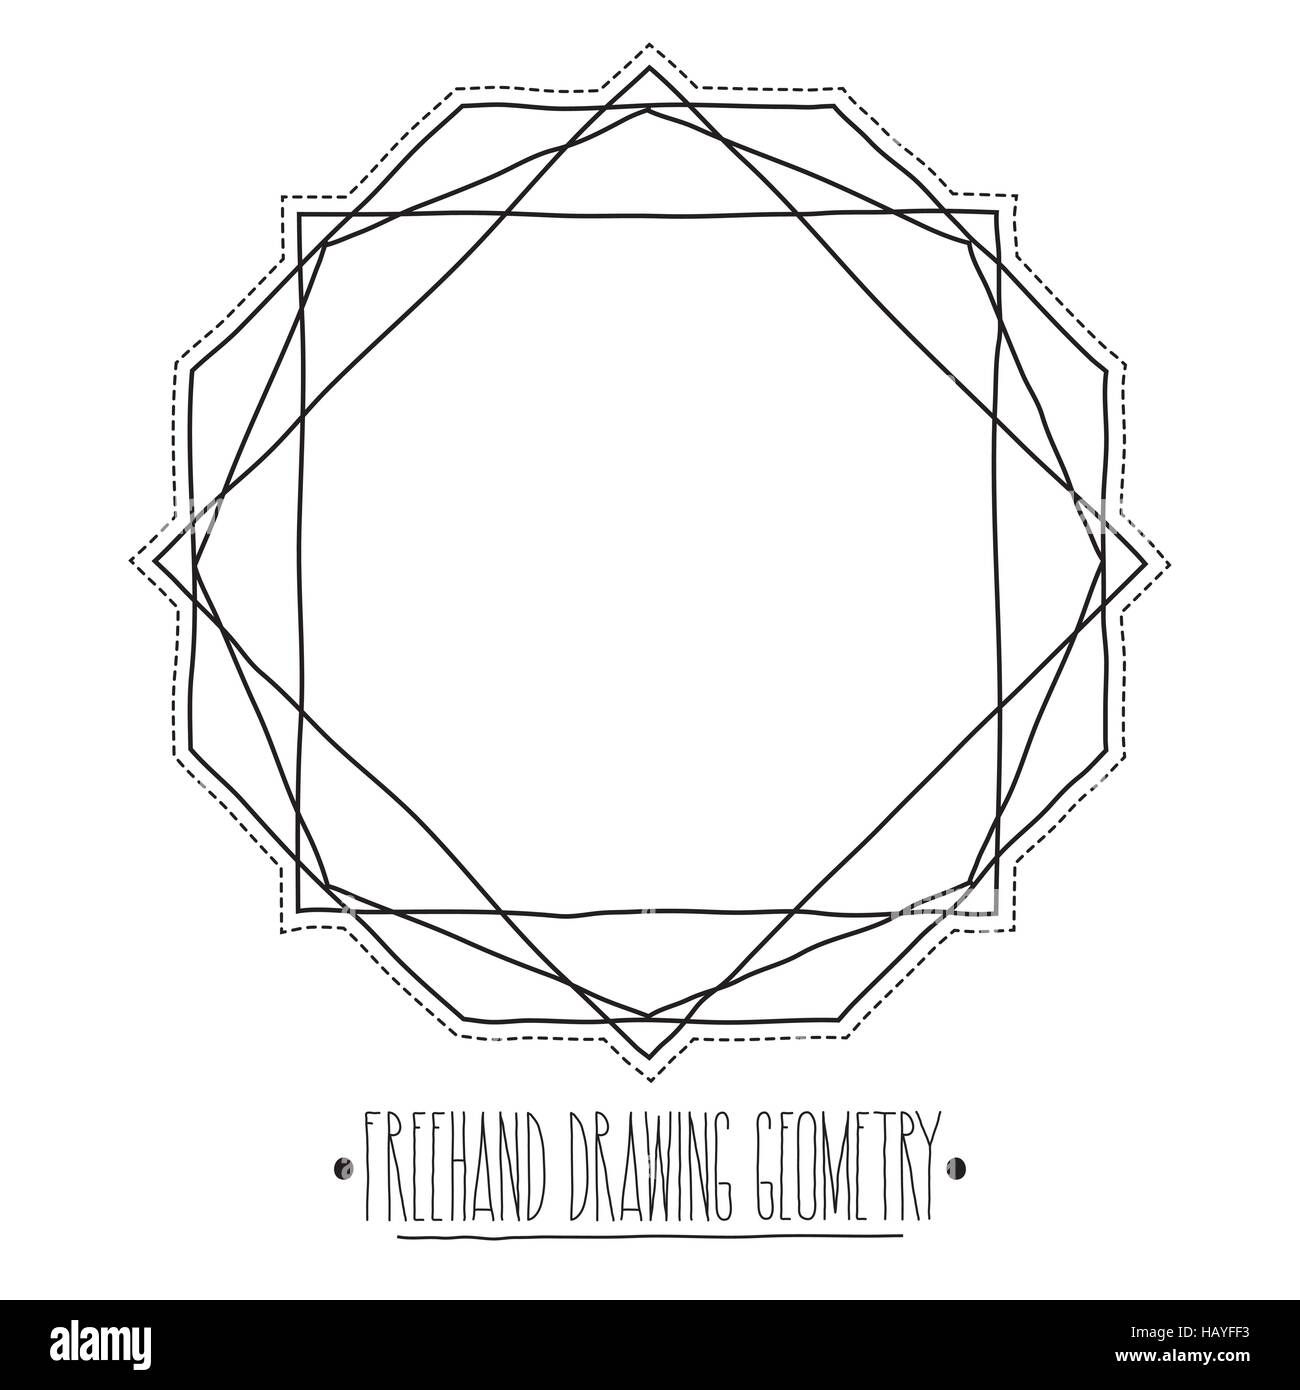 Hollow core geometric shapes and elements with lines polyhedrons - Stock Vector